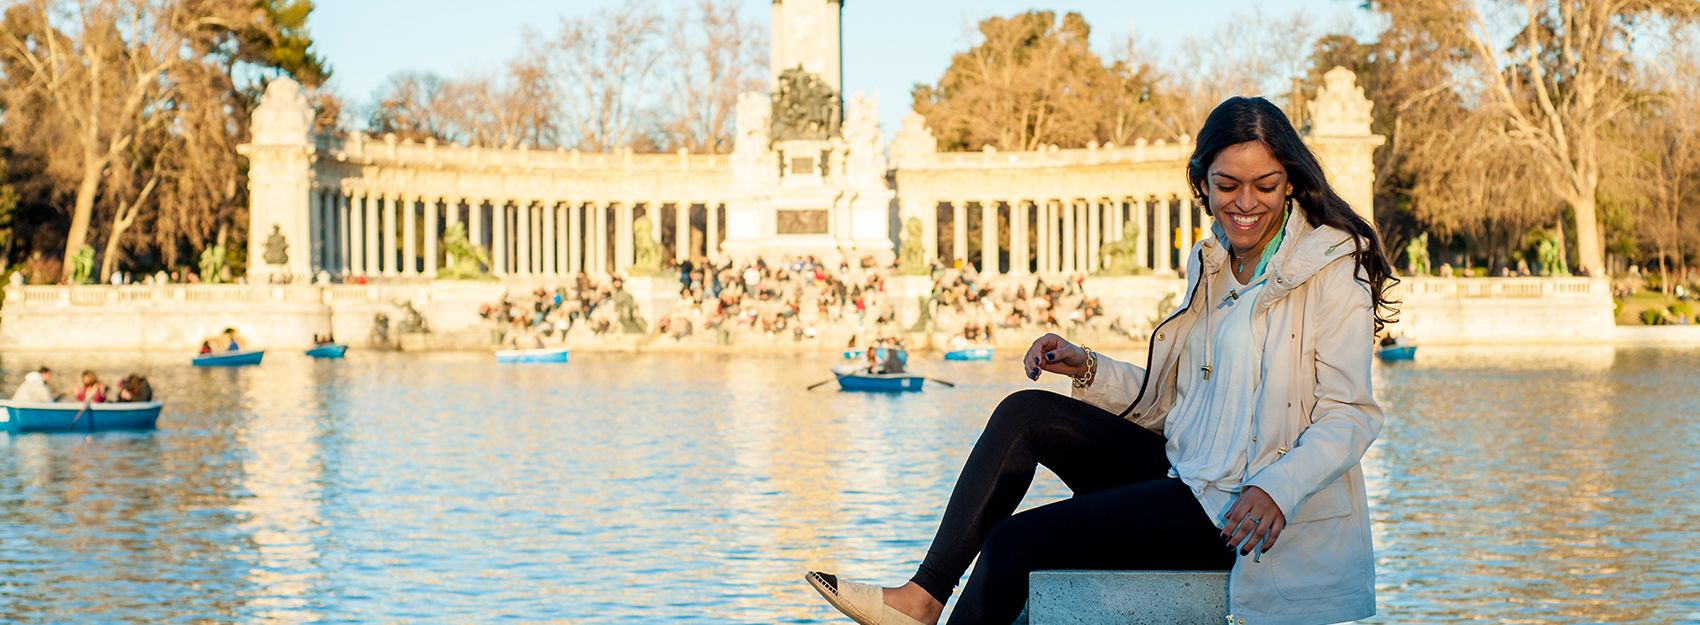 Madrid Study Abroad student sits on ledge at Retiro Park with pond and monument in the background